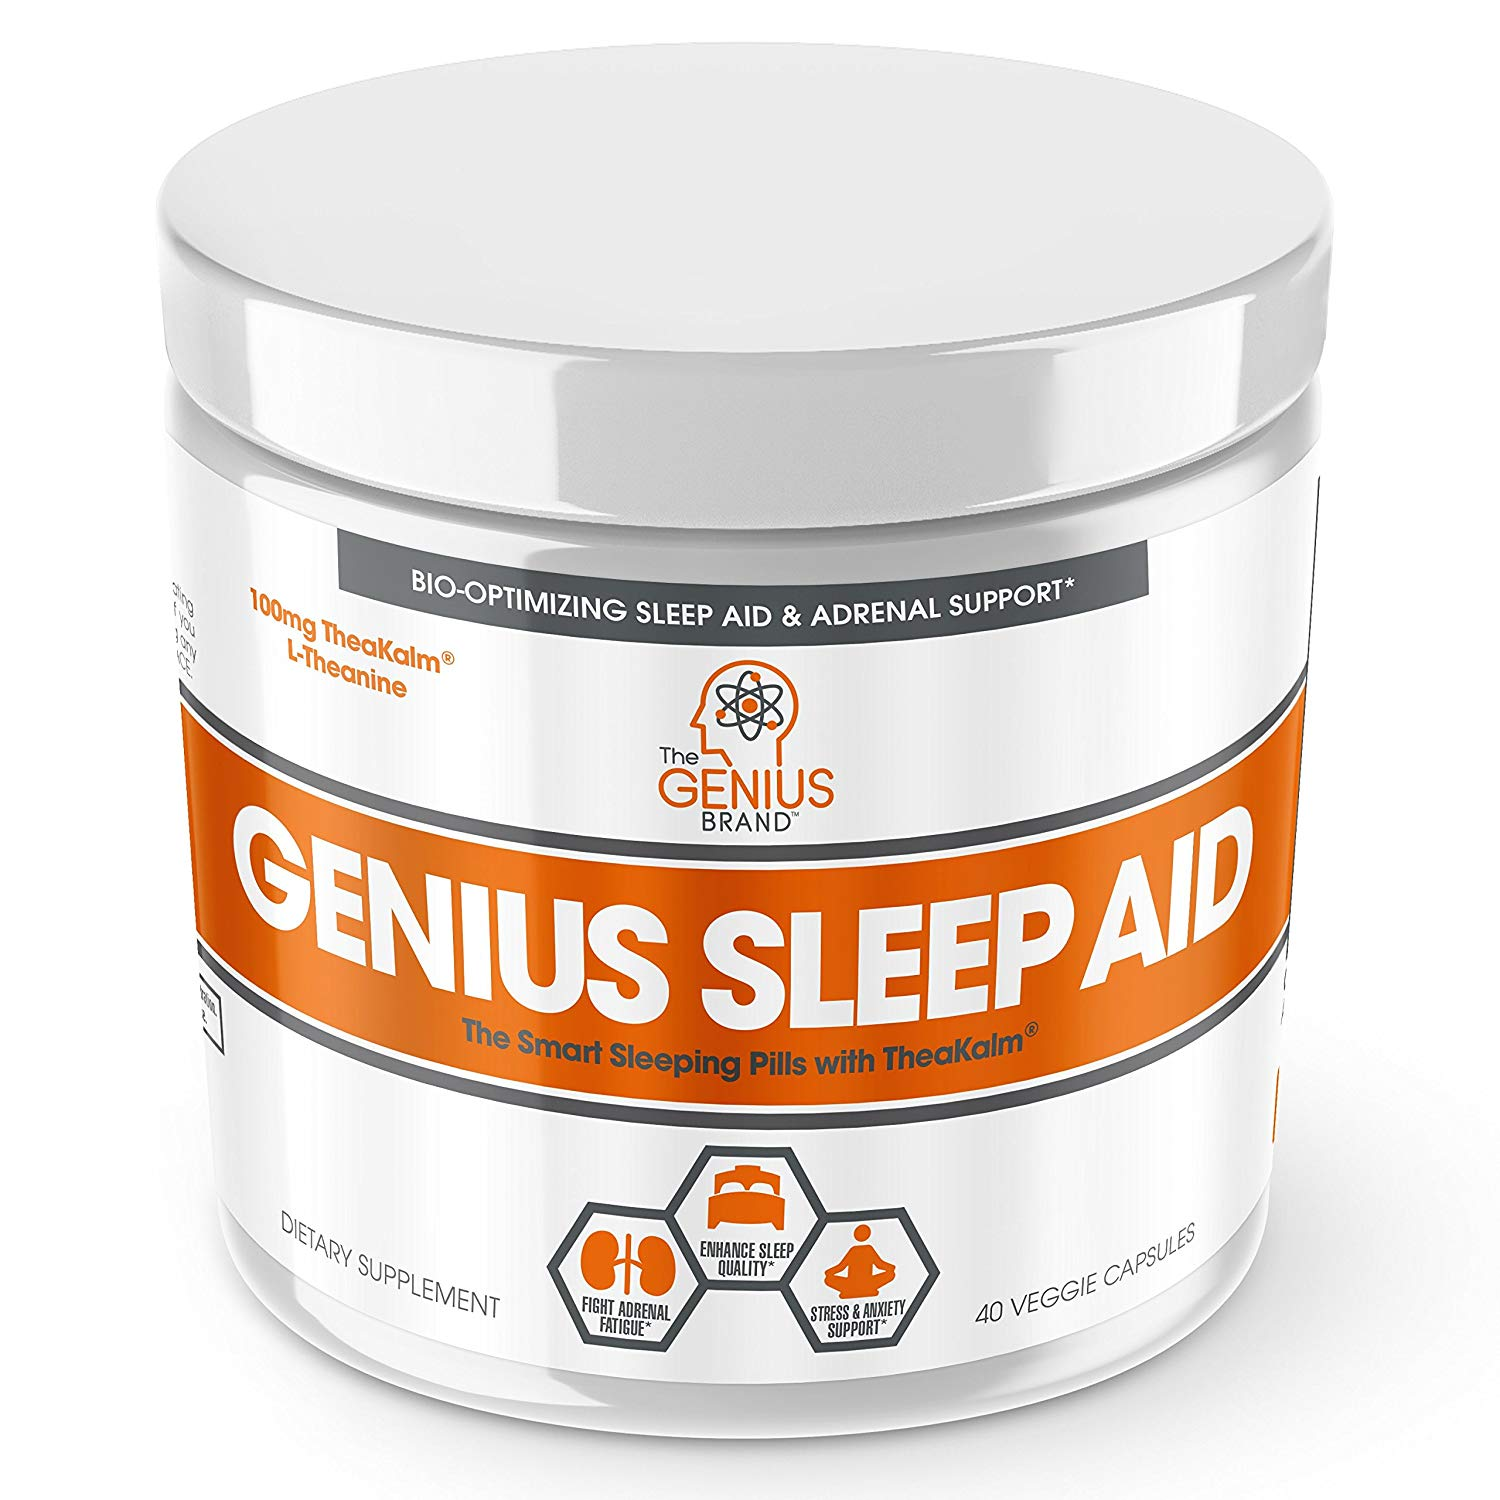 Genius Sleep AID Review by www.snoremagazine.com